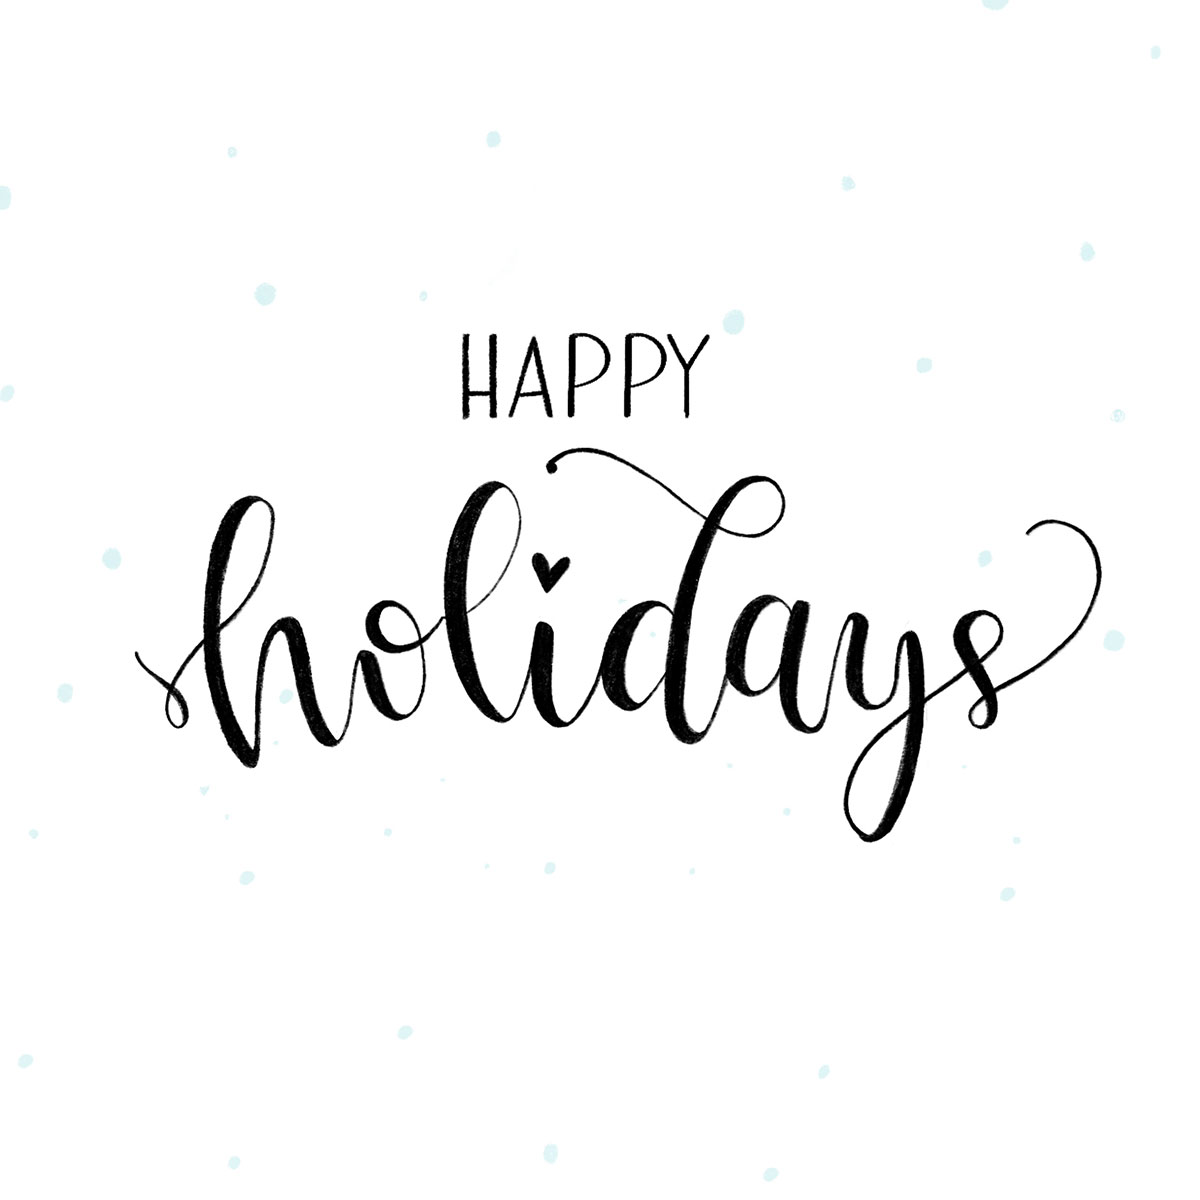 Lettering - Happy Holidays!